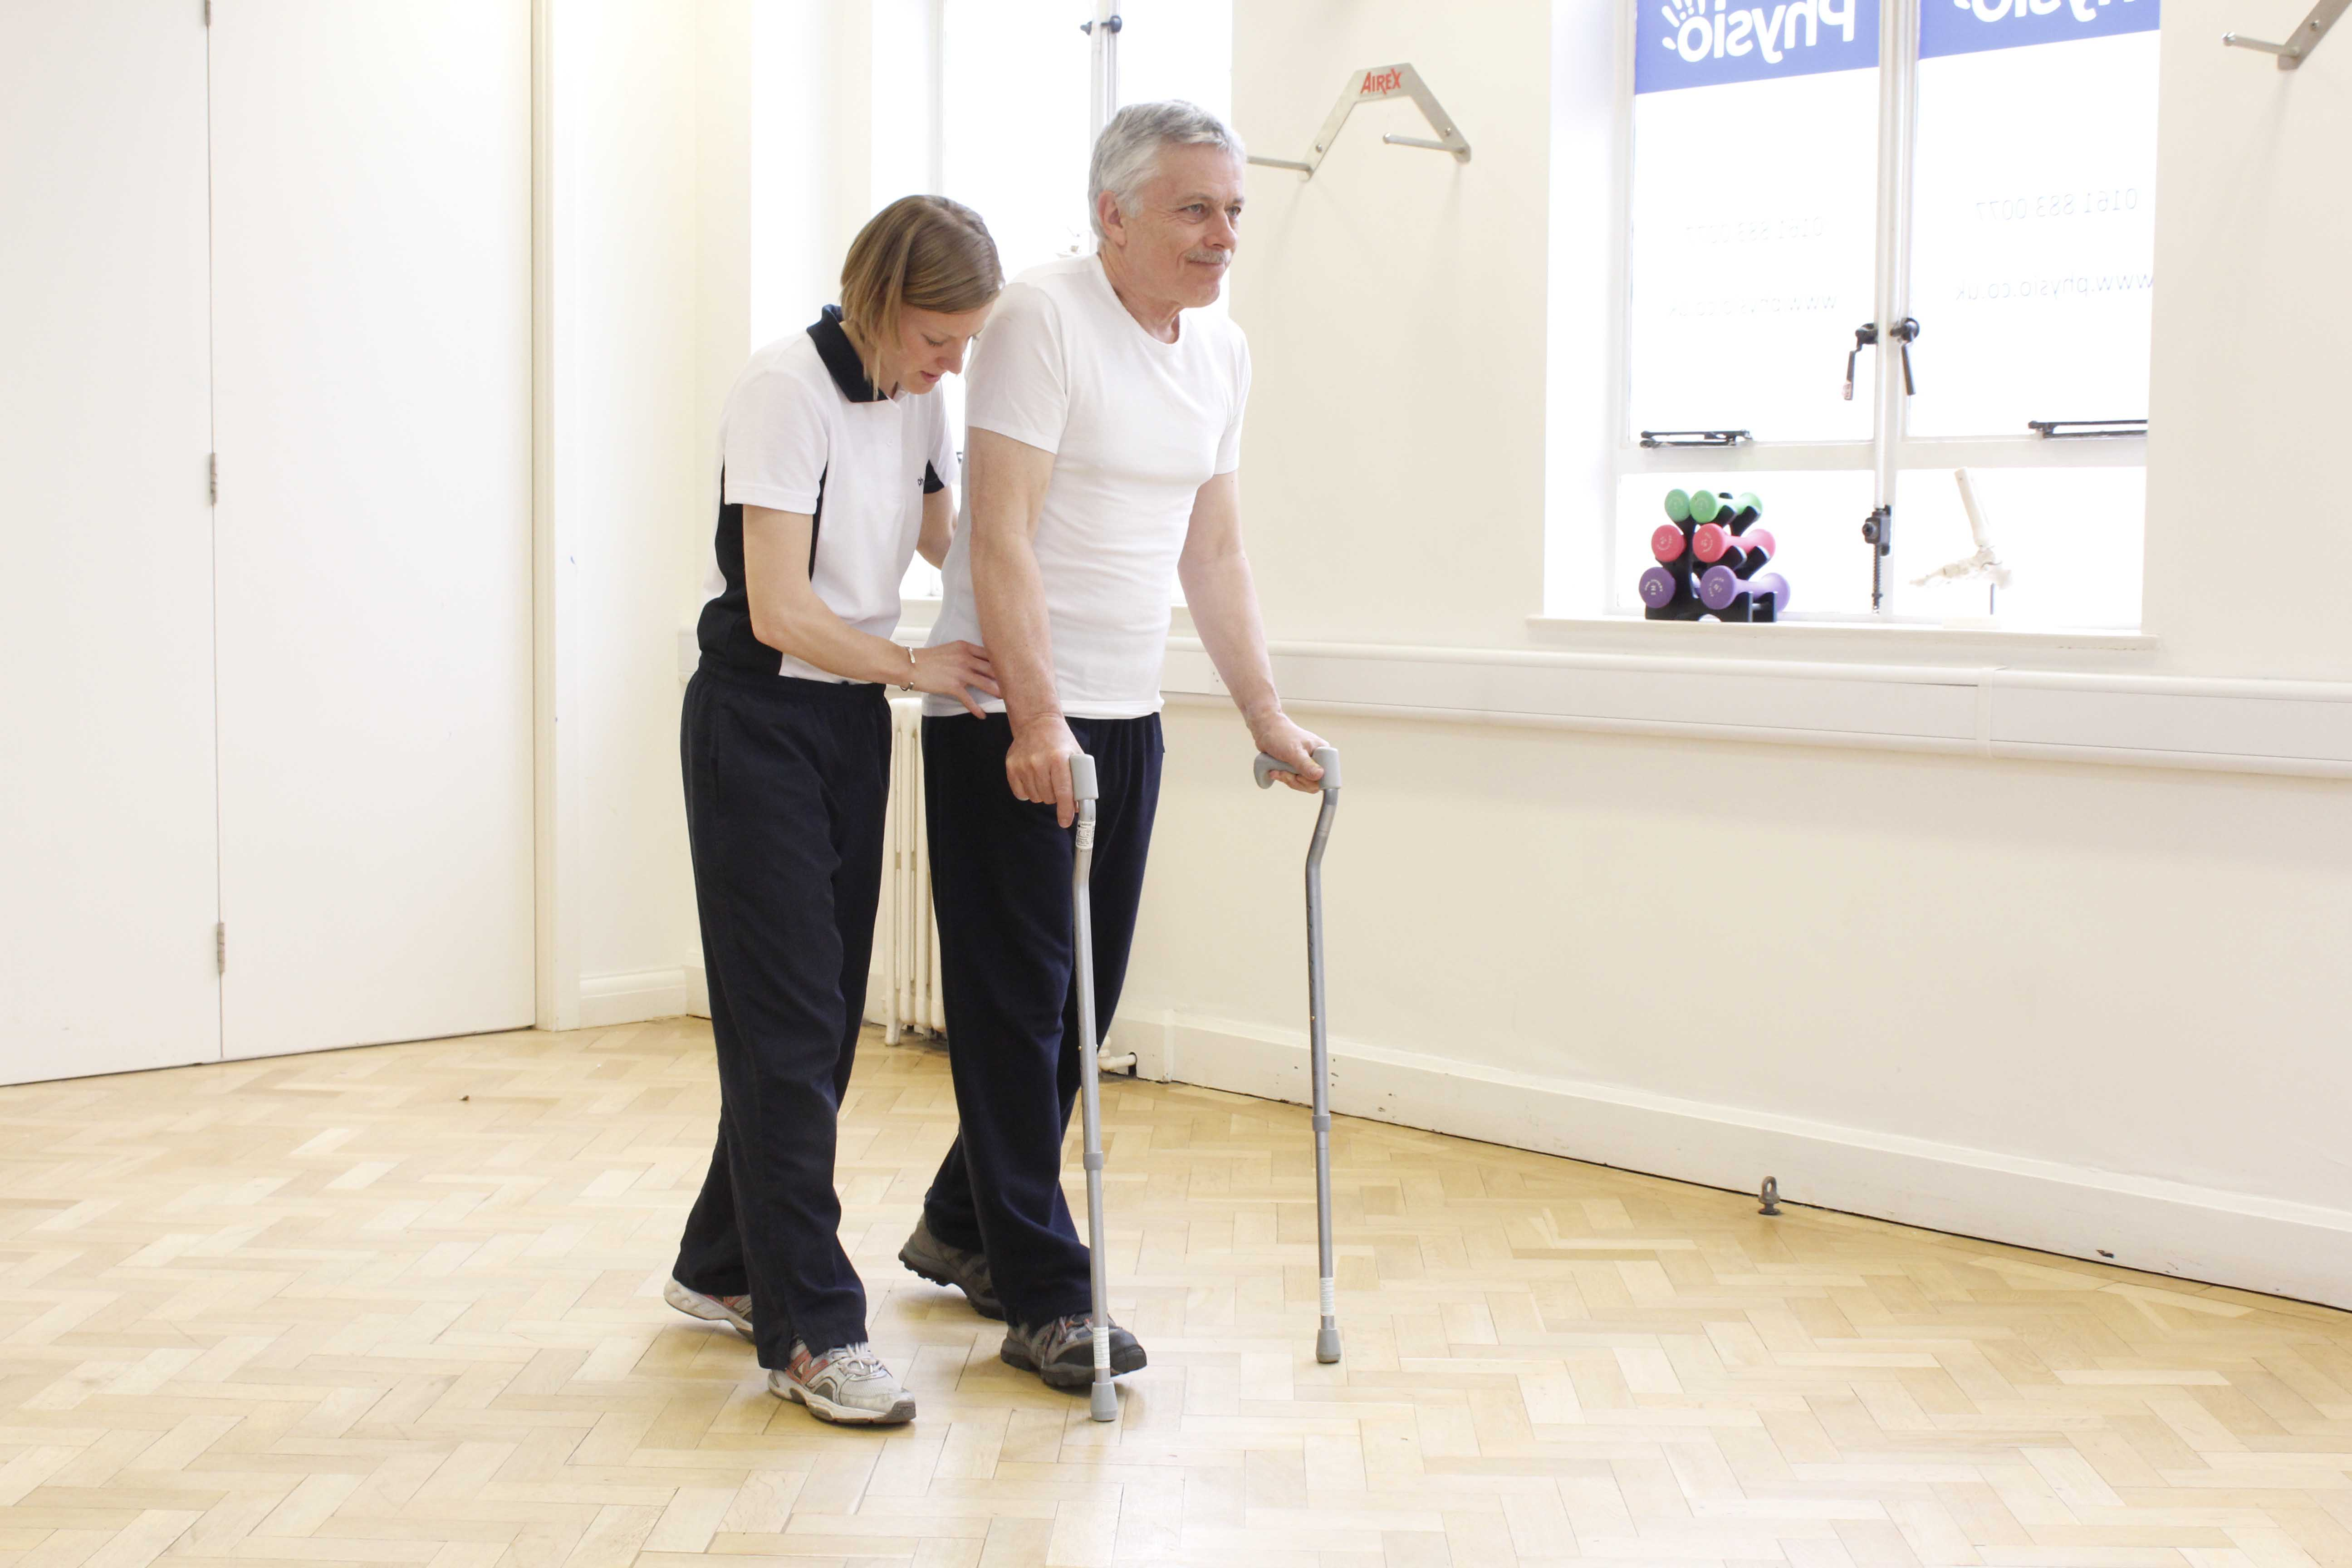 Mobility exercises using two walking sticks and close supervision of a physiotherapist